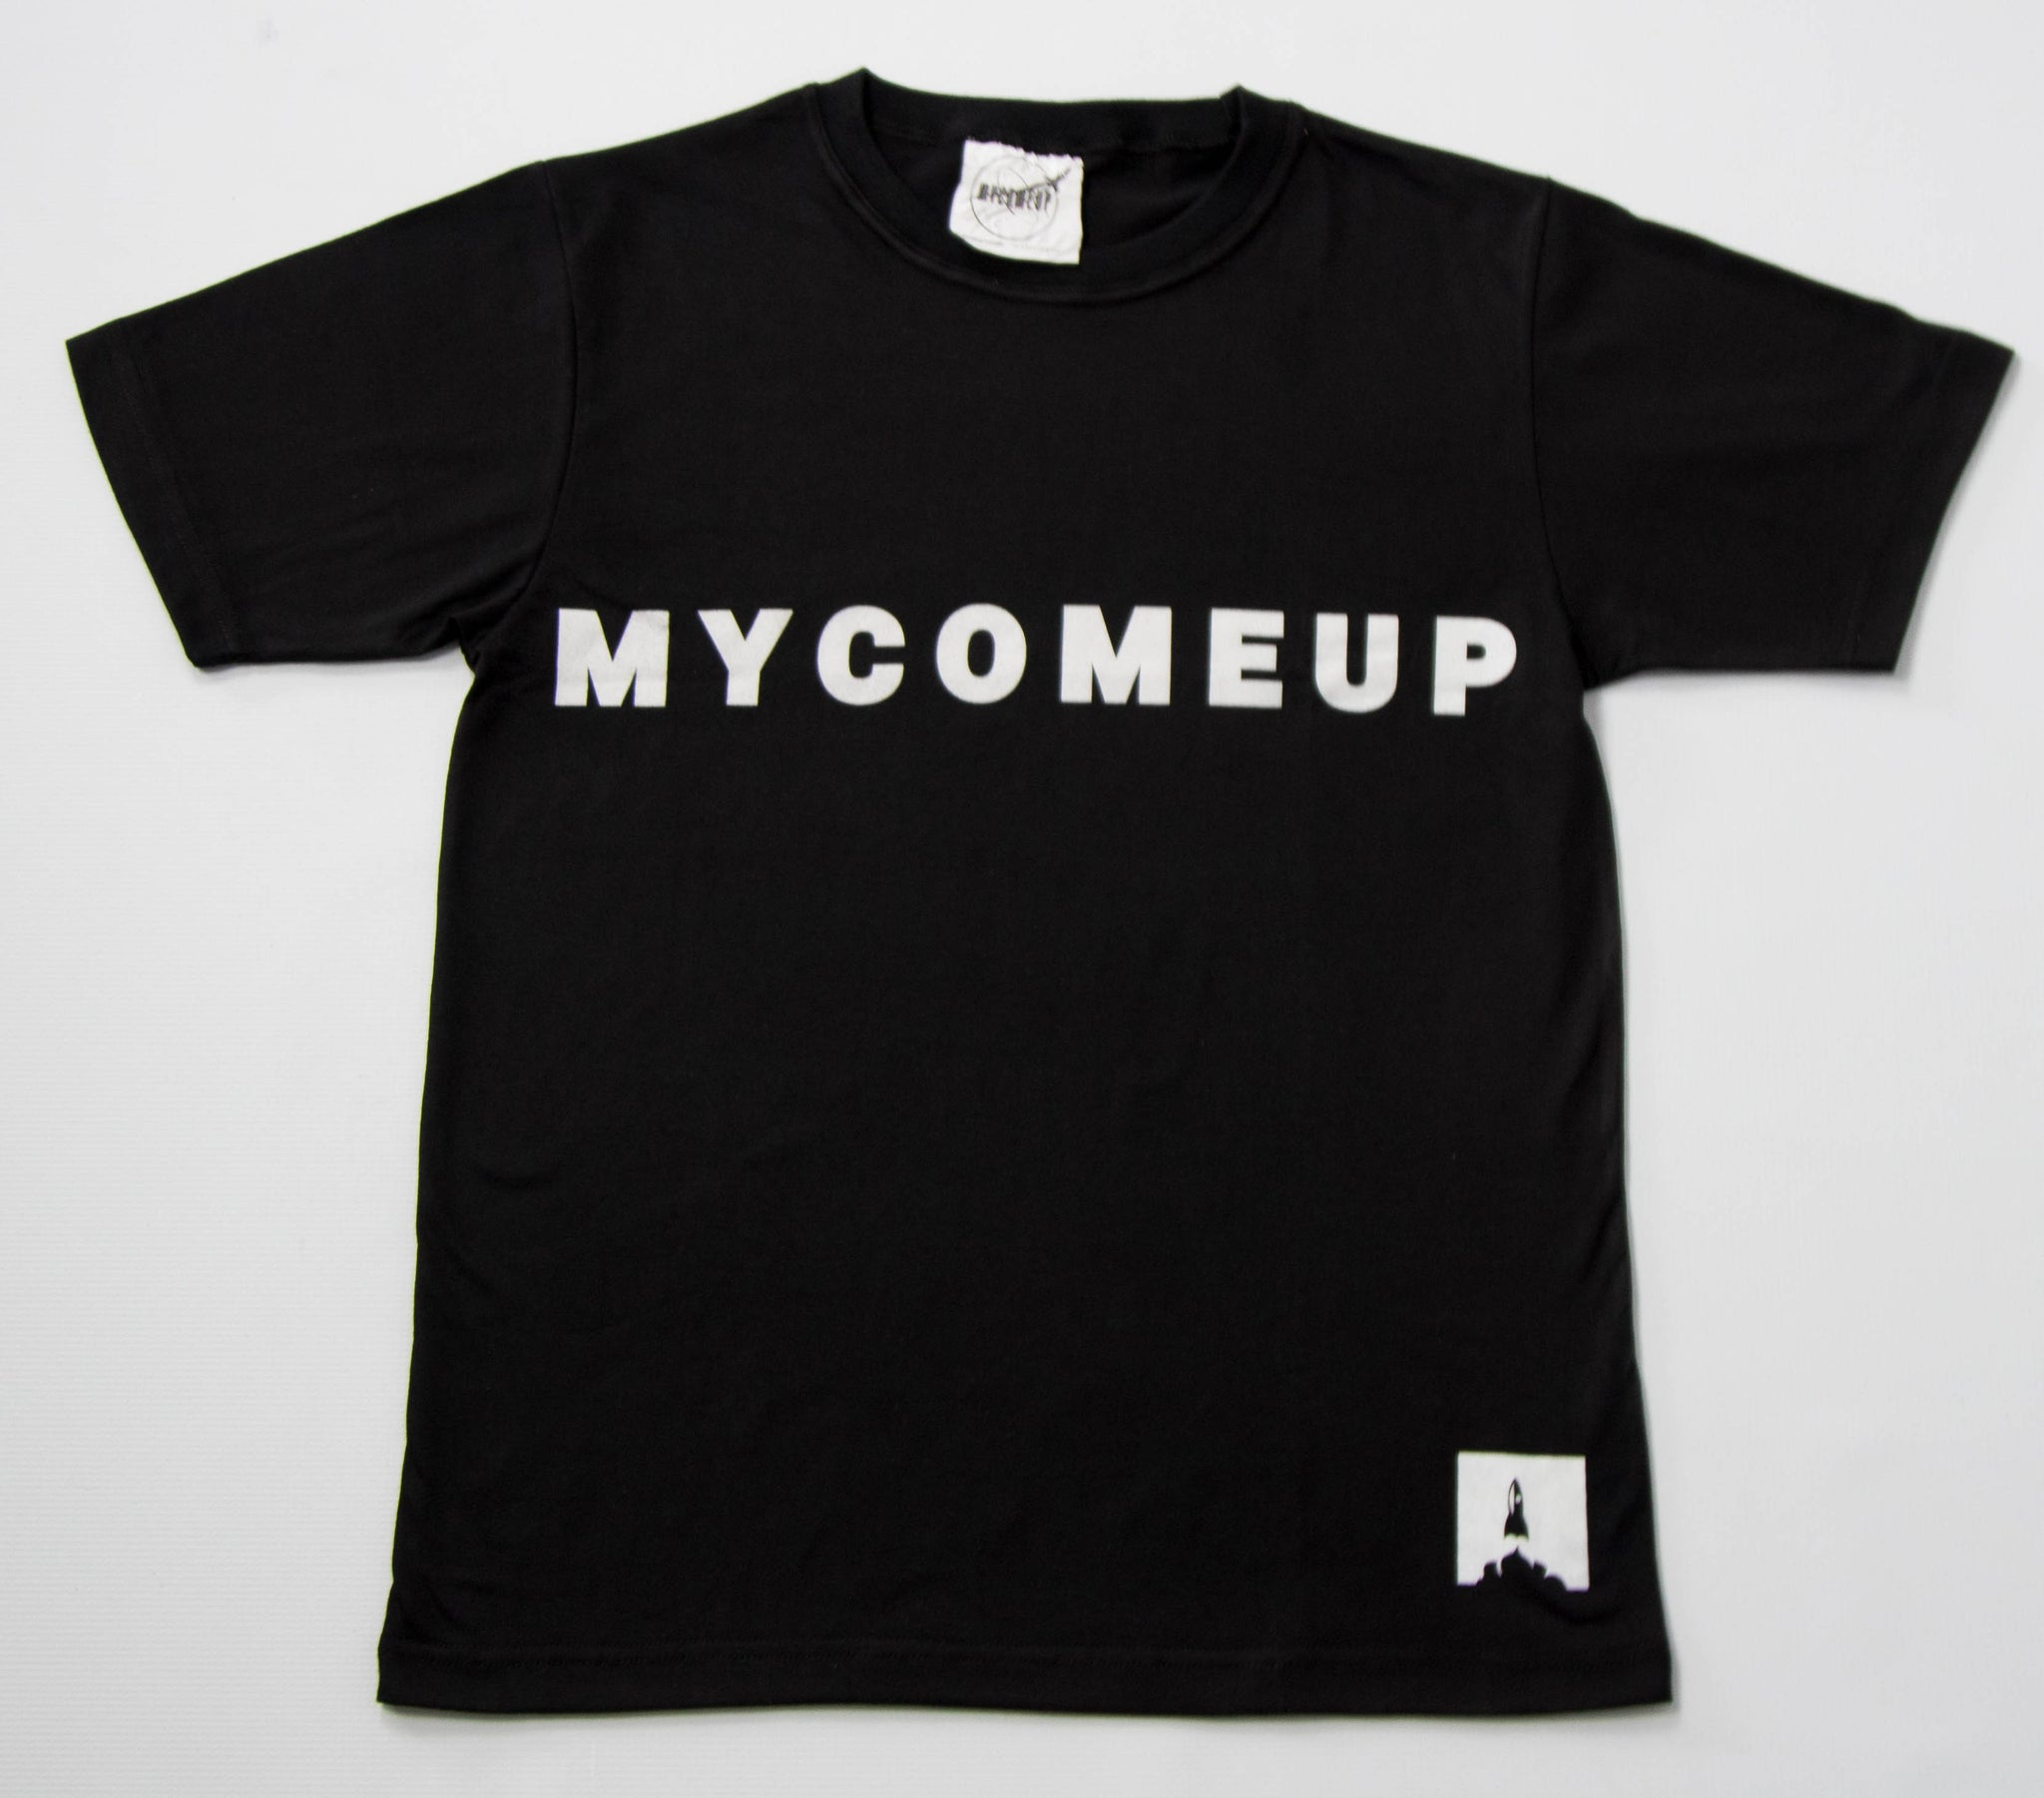 MYCOMEUP Original Black T-shirt